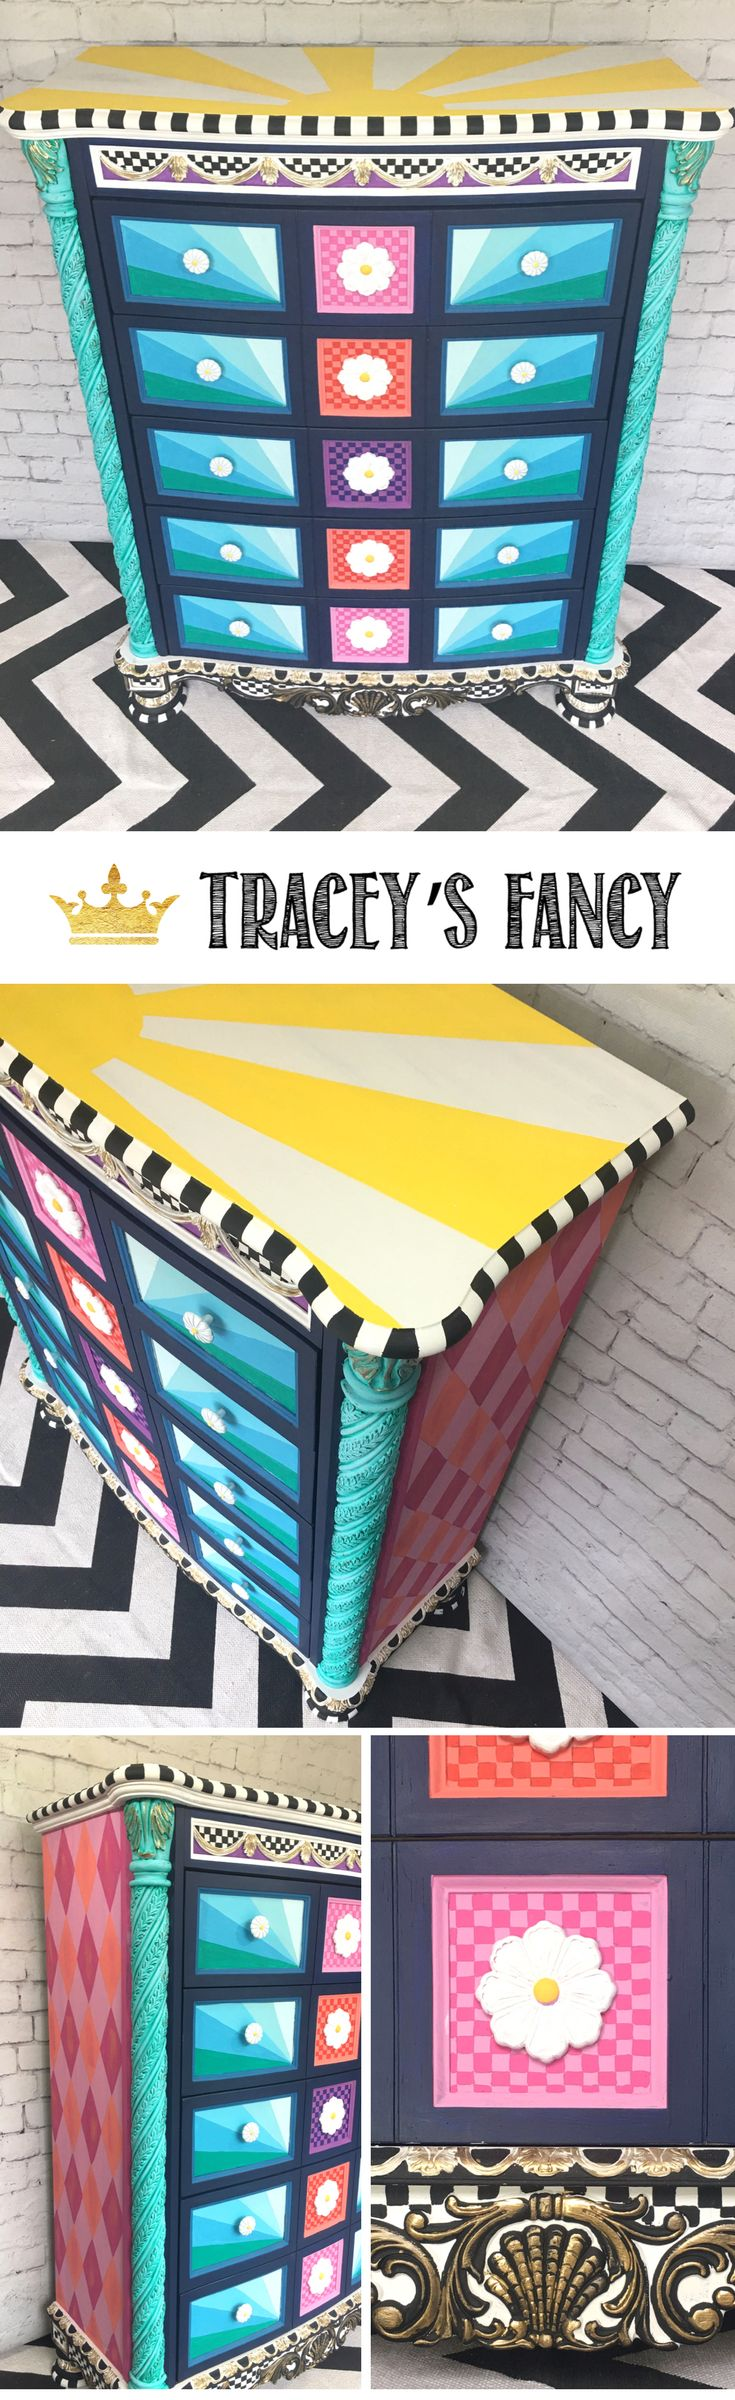 Colorful Dresser Feature Furniture for Girls Room | How to Paint Furniture + How to Add Stripes, Harlequins and checkerboards to Furniture + How to use colors in furniture pieces | Furniture Painting Tips and Painted Furniture Ideas by Tracey's Fancy